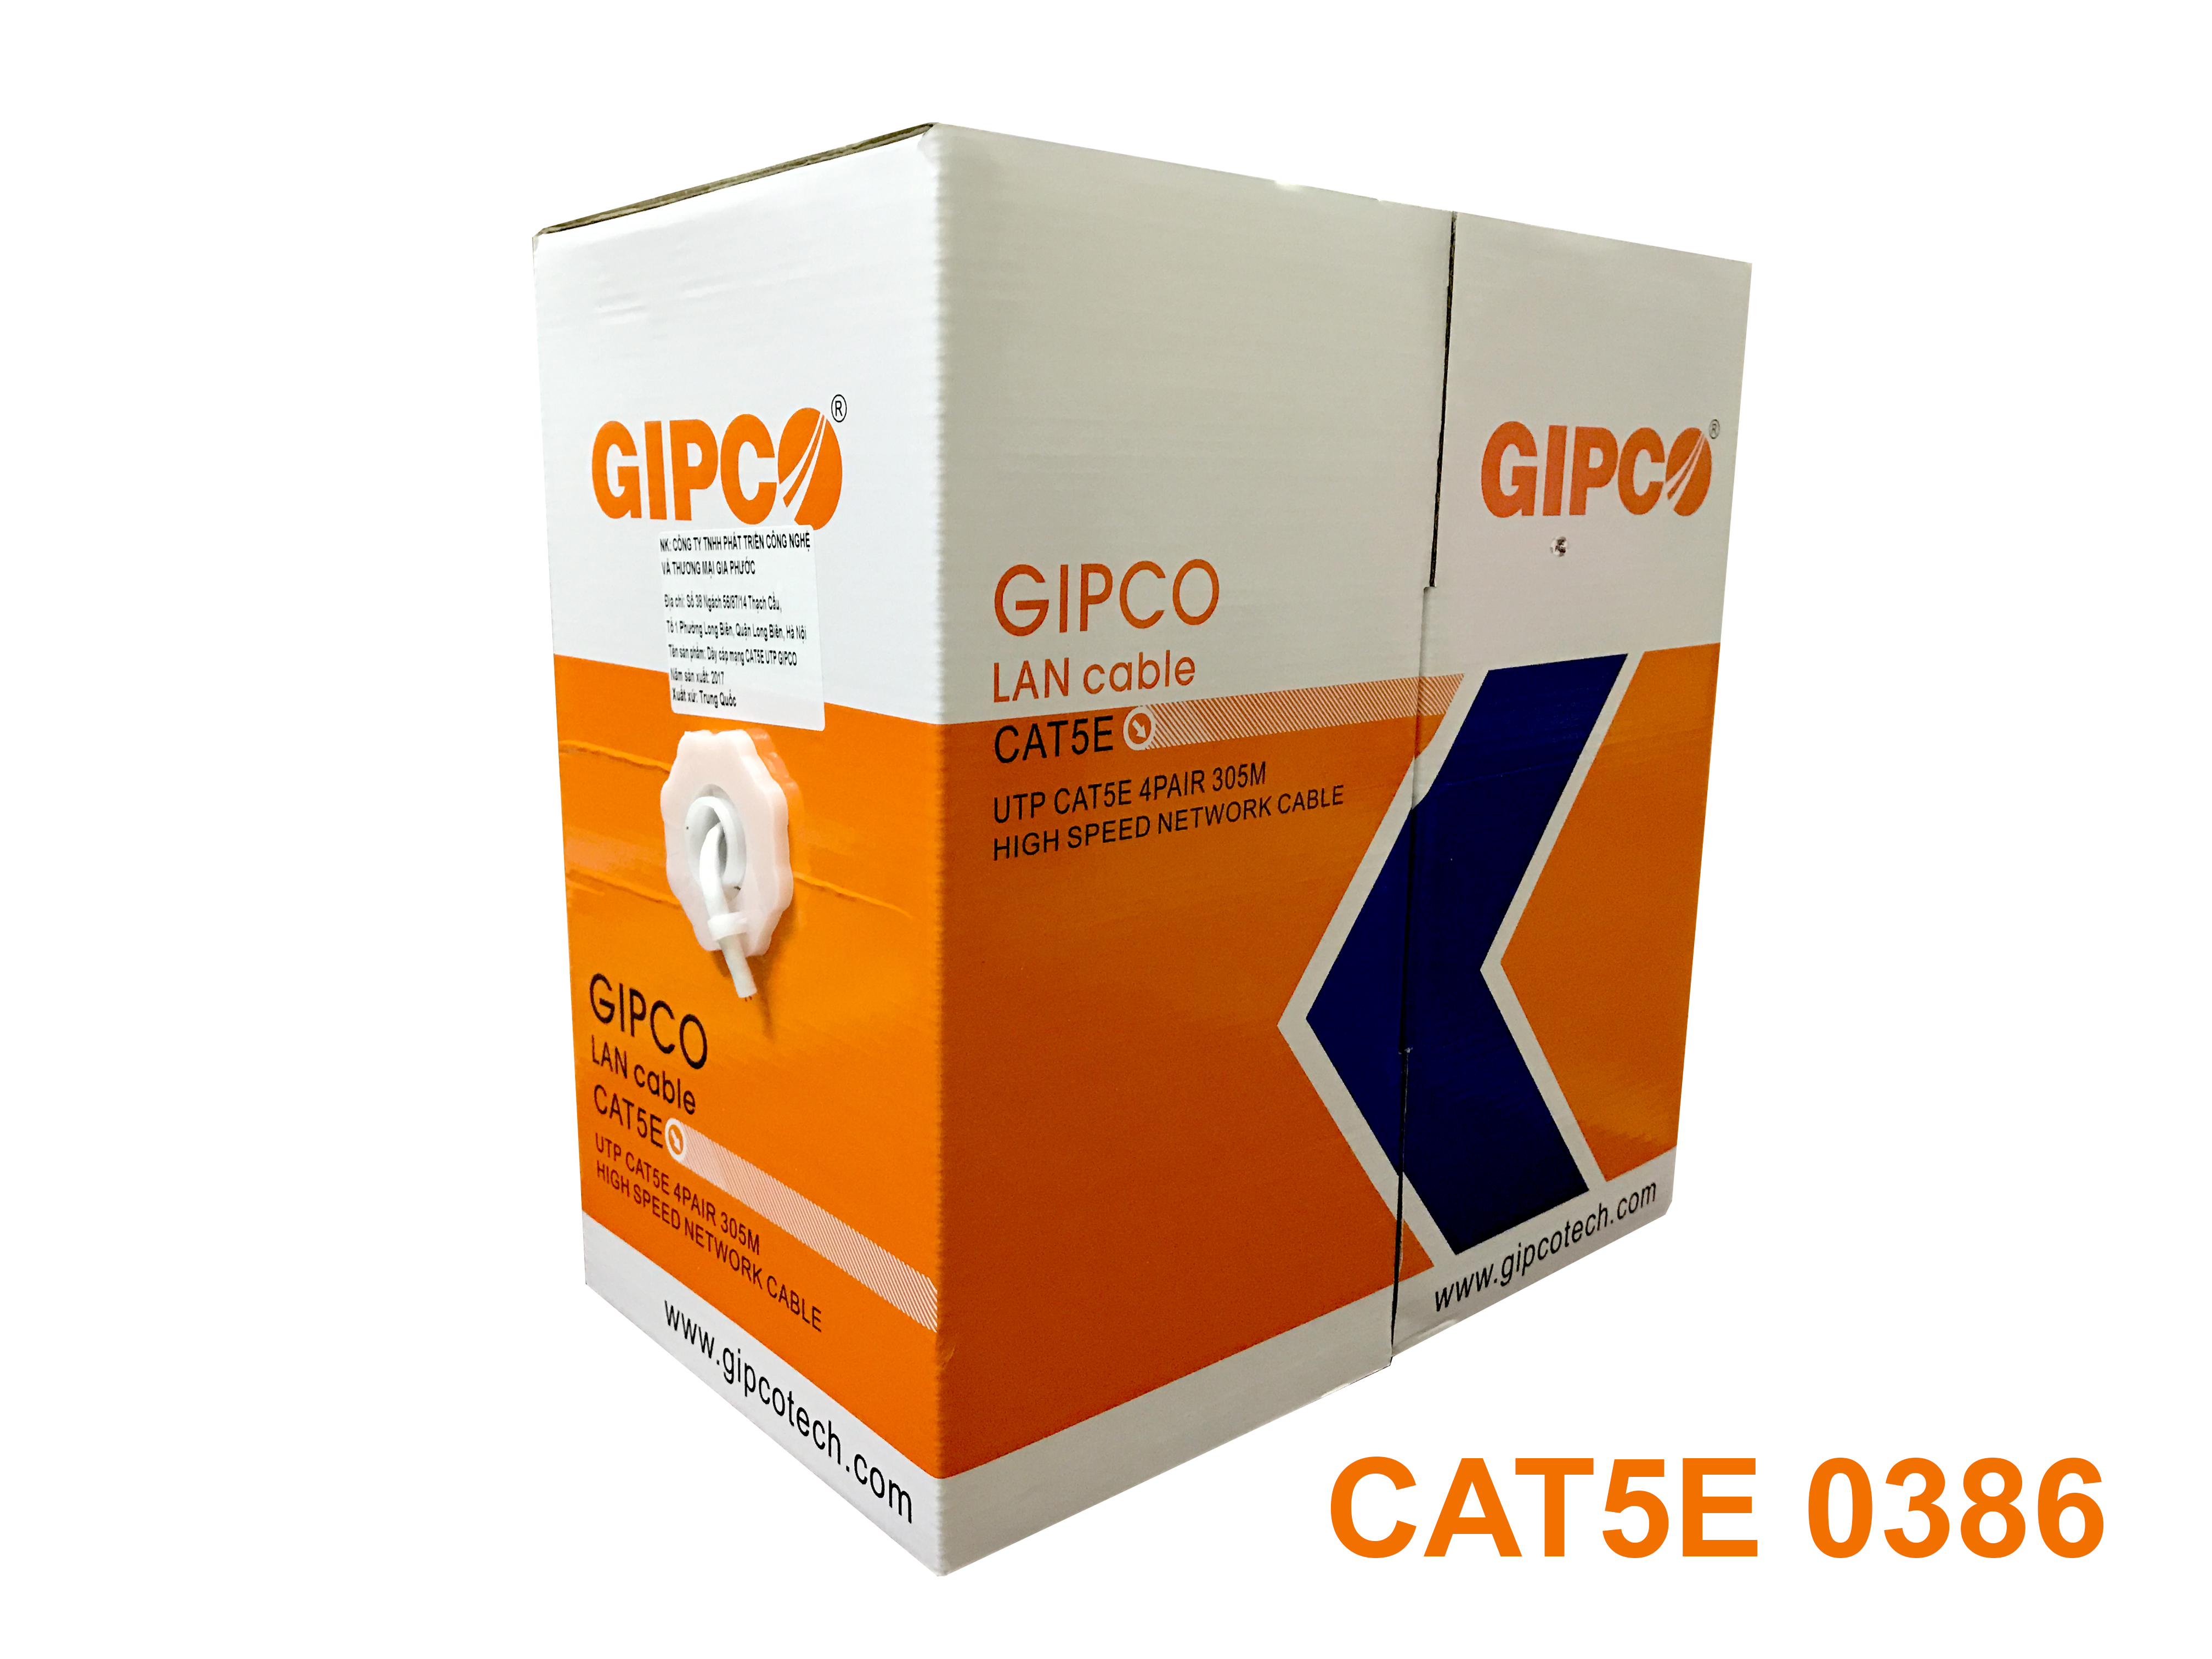 Cable Mạng GIPCO - UTP CAT5E - 0386